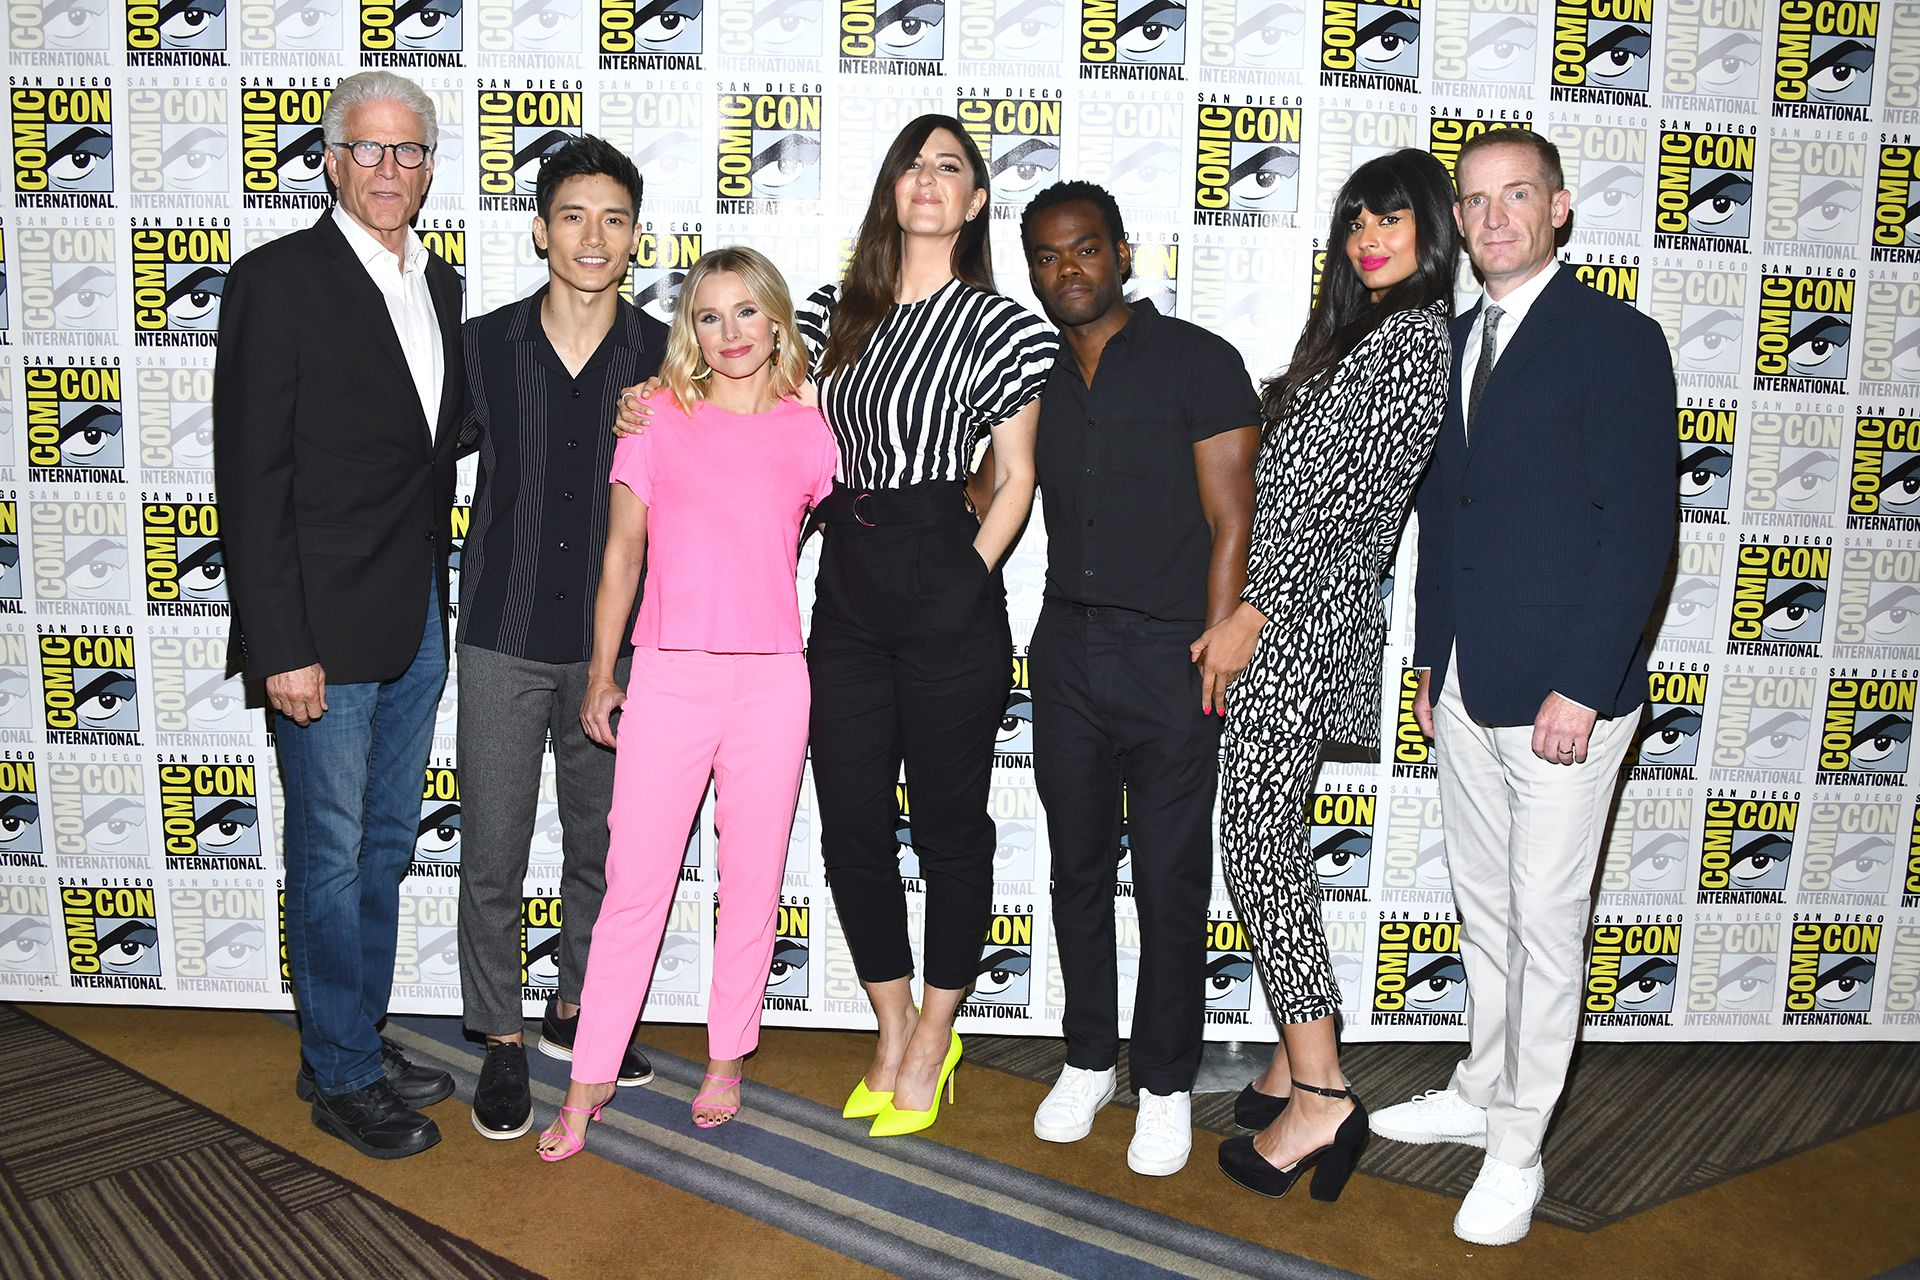 "Ted Danson, Manny Jacinto, Kristen Bell, D'Arcy Carden, William Jackson Harper, Jameela Jamil and Marc Evan Jackson el elenco de la serie – ""The Good Place"""